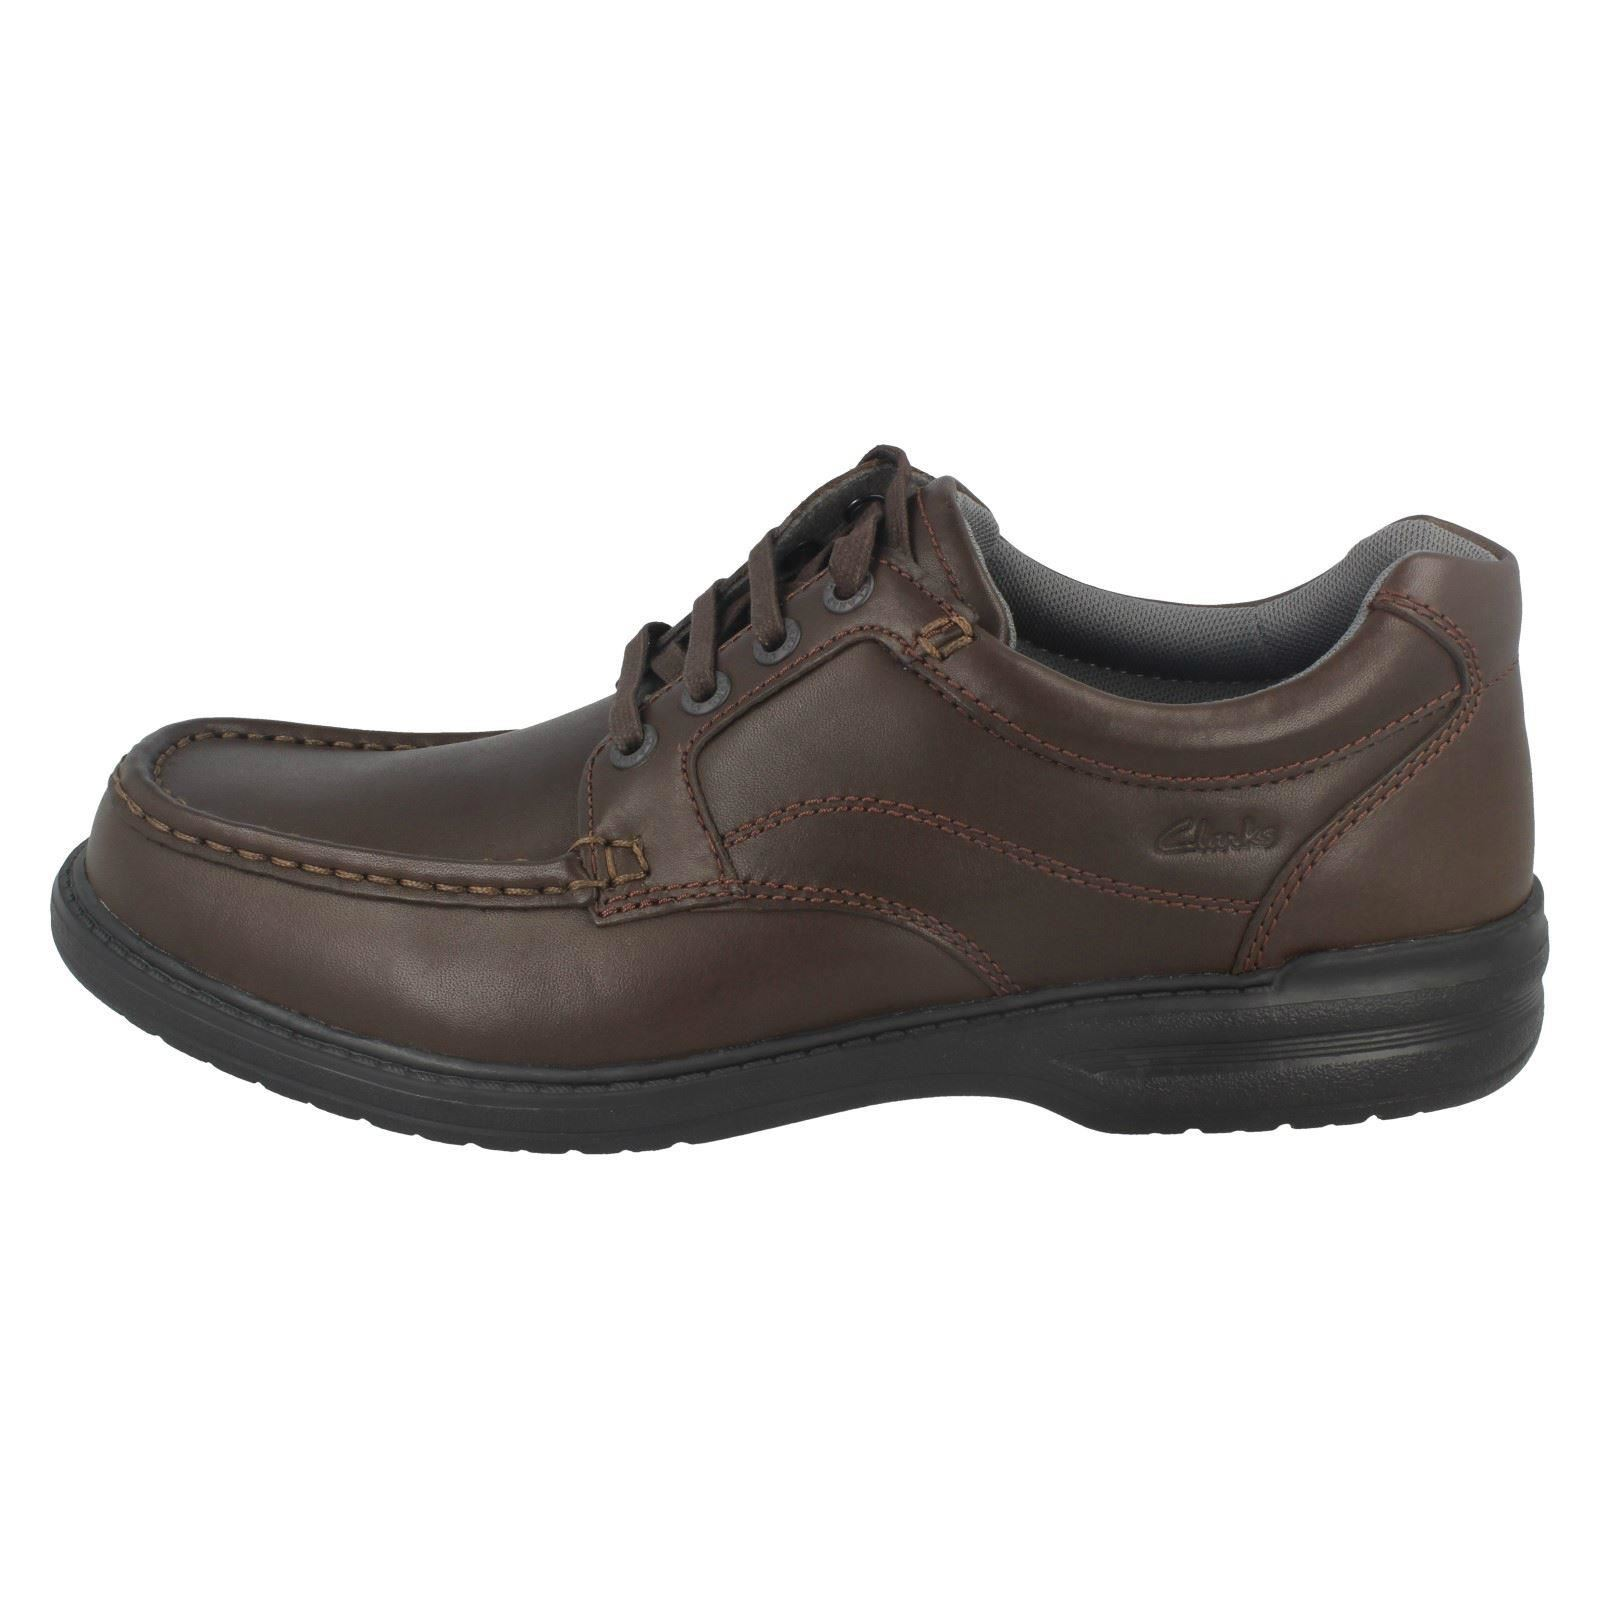 Mens Clarks Casual shoes shoes shoes Keeler Walk 13f390